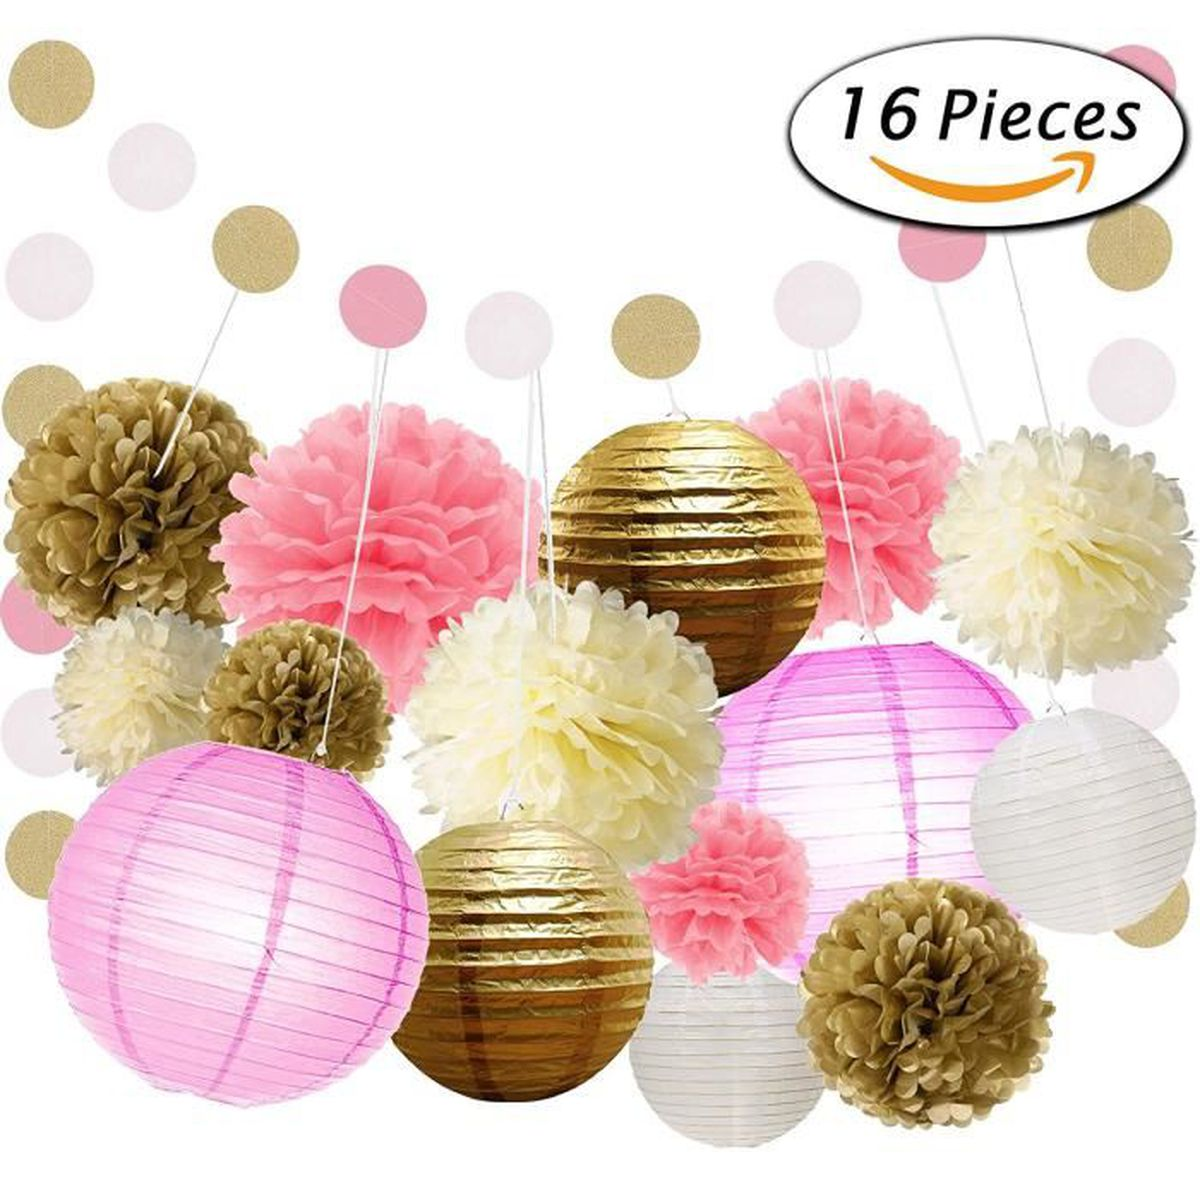 kit 16pcs guirlande d coration papier mariage anniversaire fleurs pompons papier de soie boule. Black Bedroom Furniture Sets. Home Design Ideas